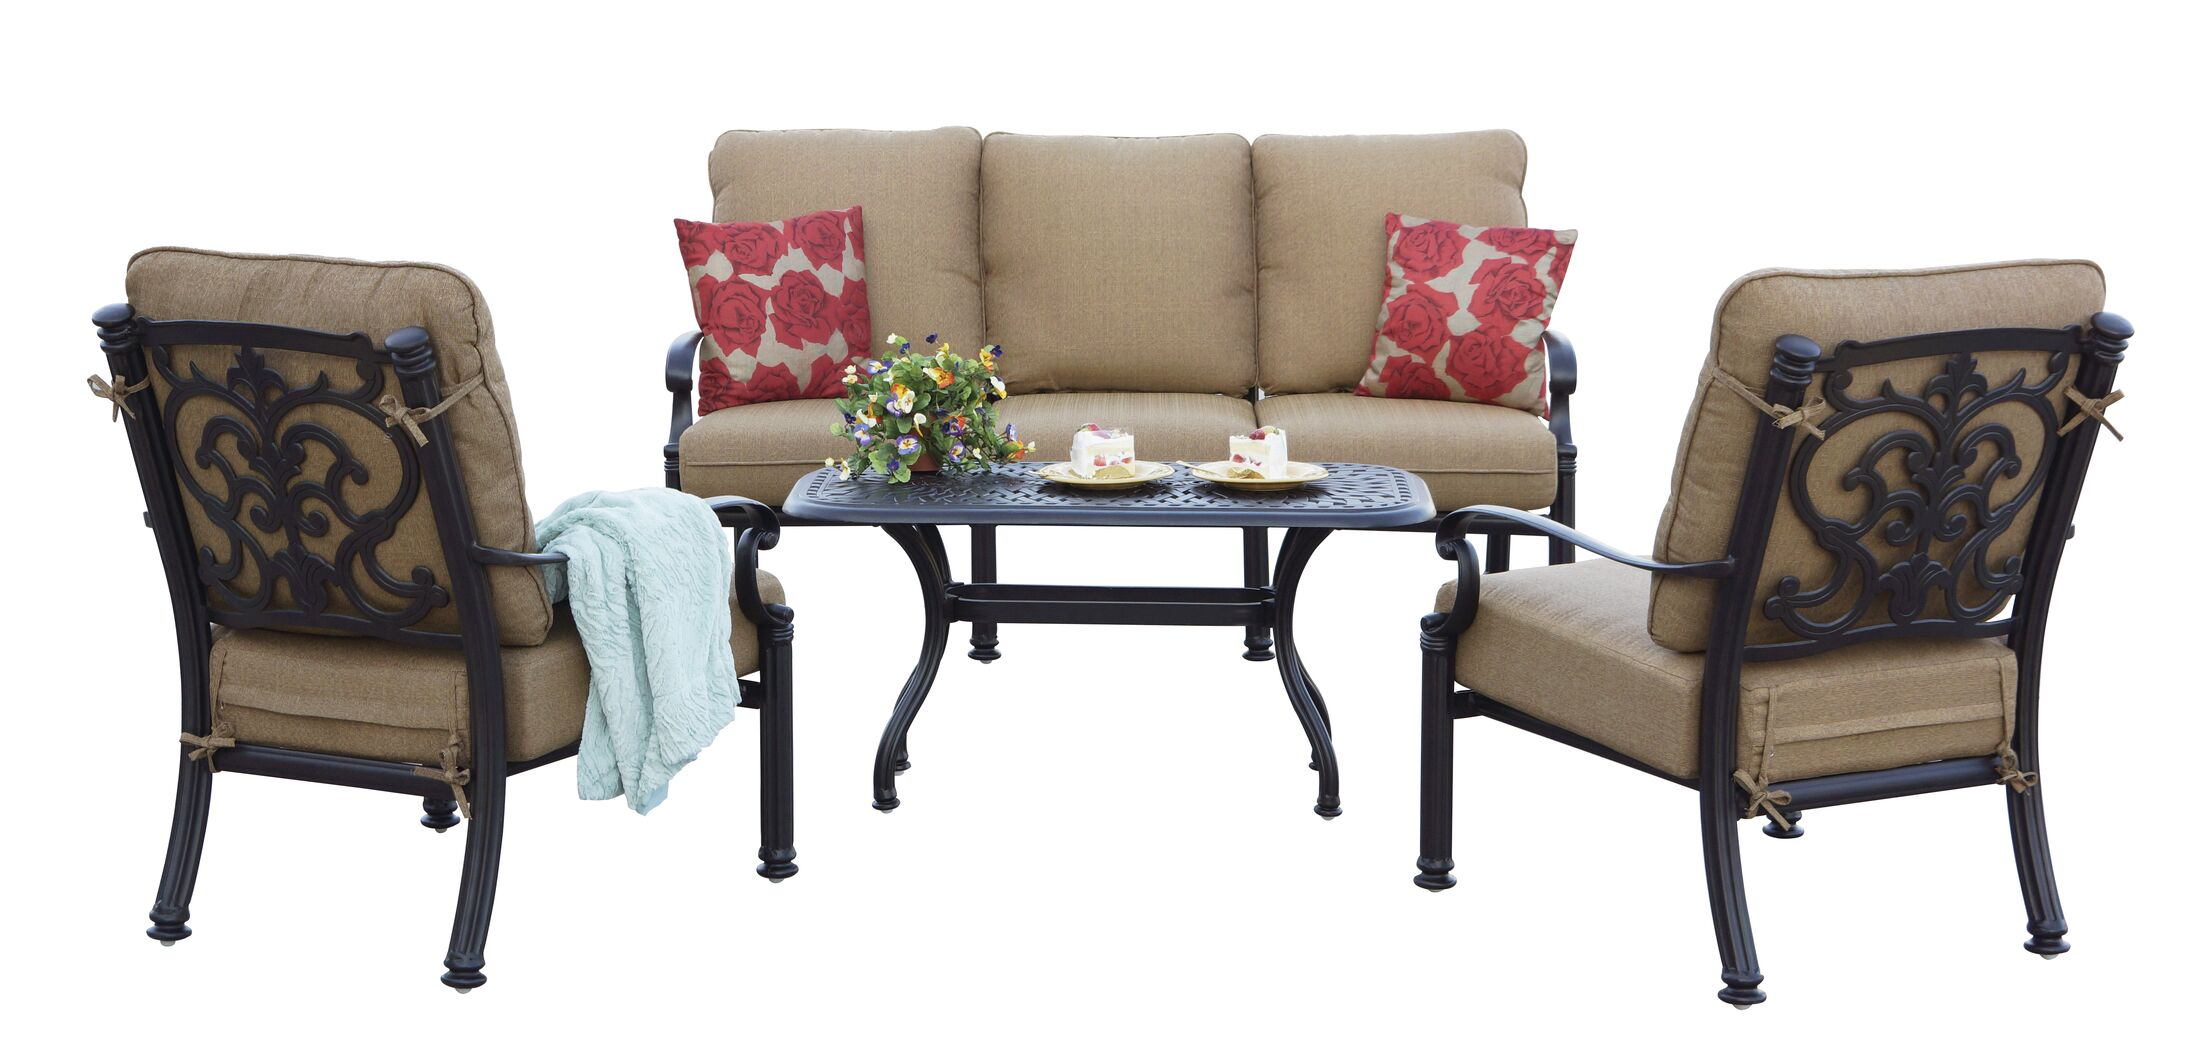 Palazzo Sasso 4 Piece Sofa Set with Cushions Frame Color: Antique Bronze